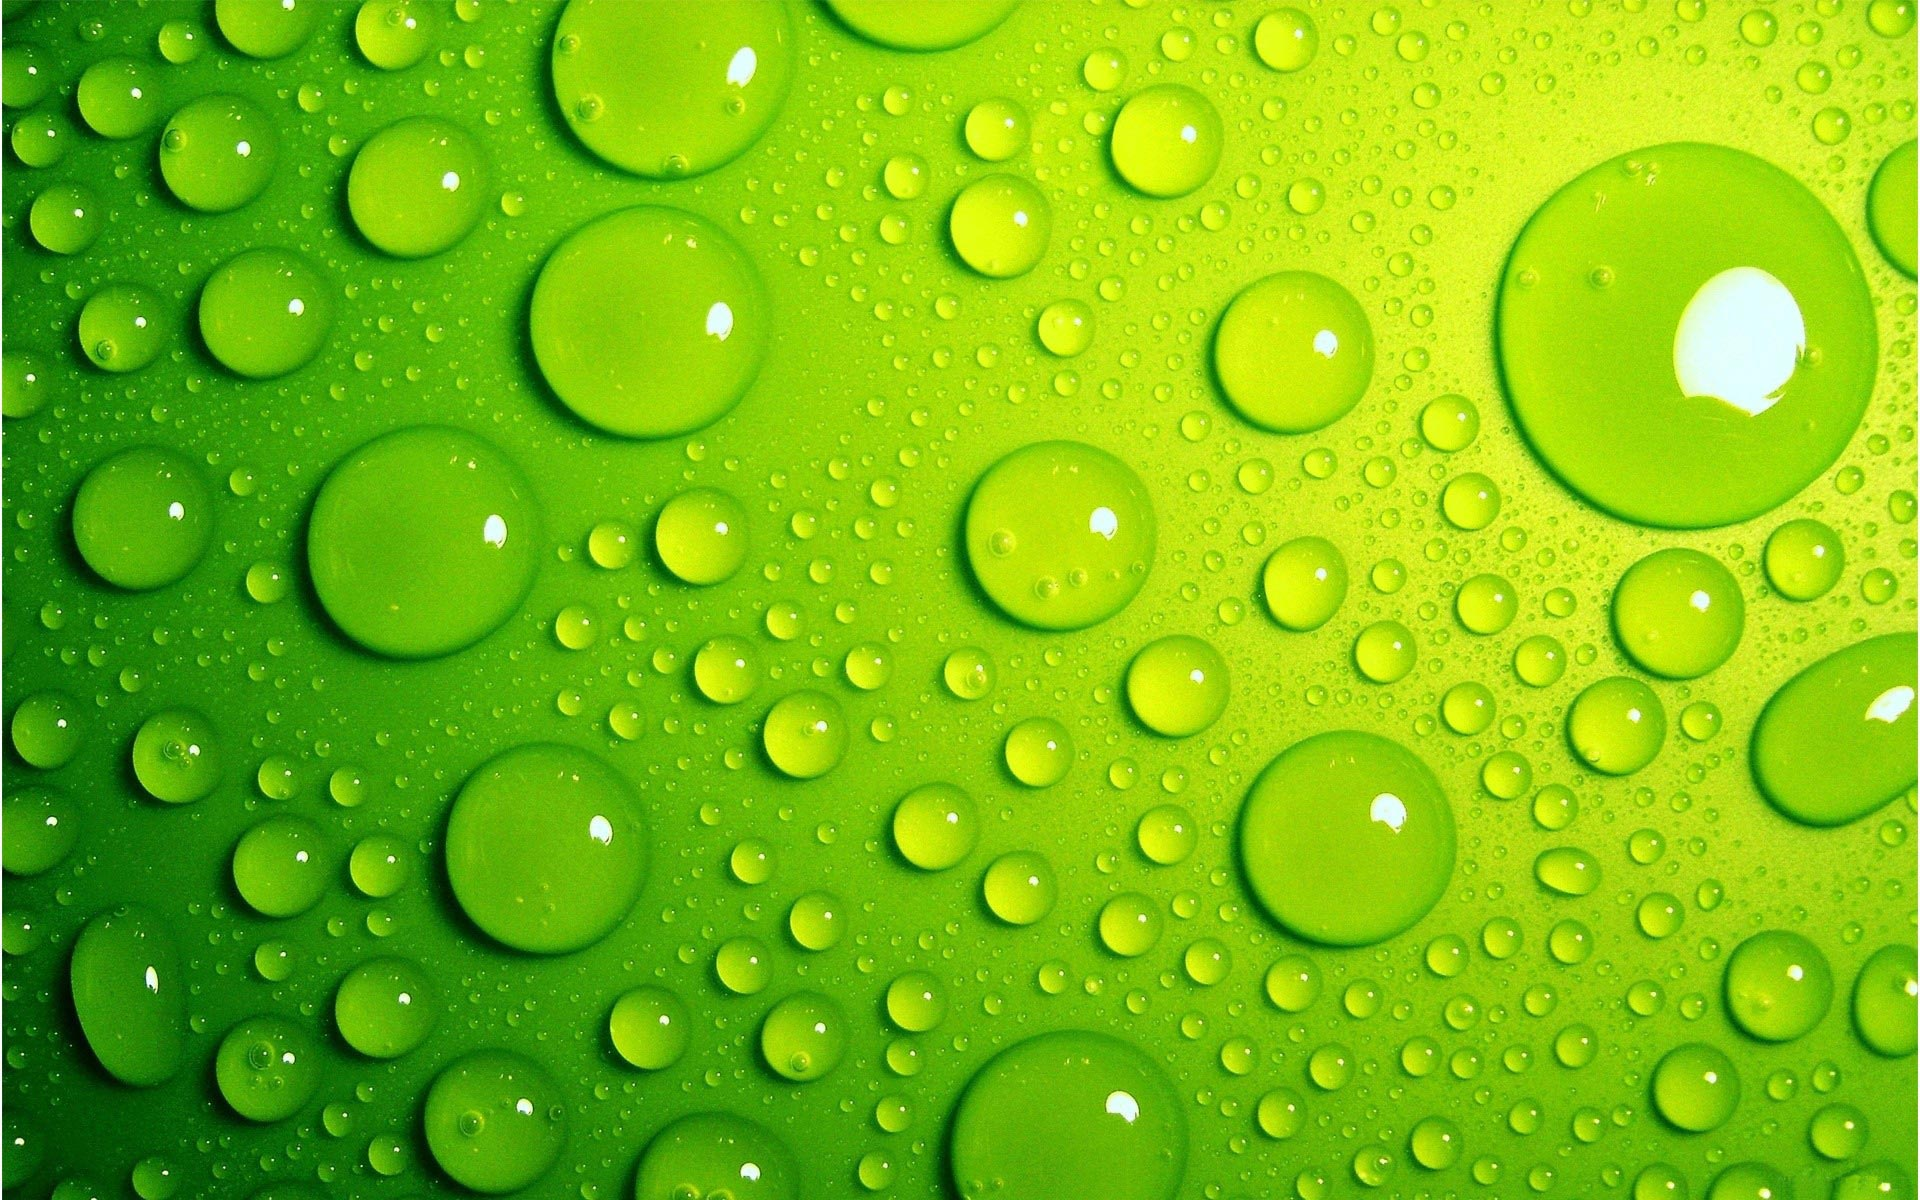 light green droplets abstract wallpaper Wallpaper